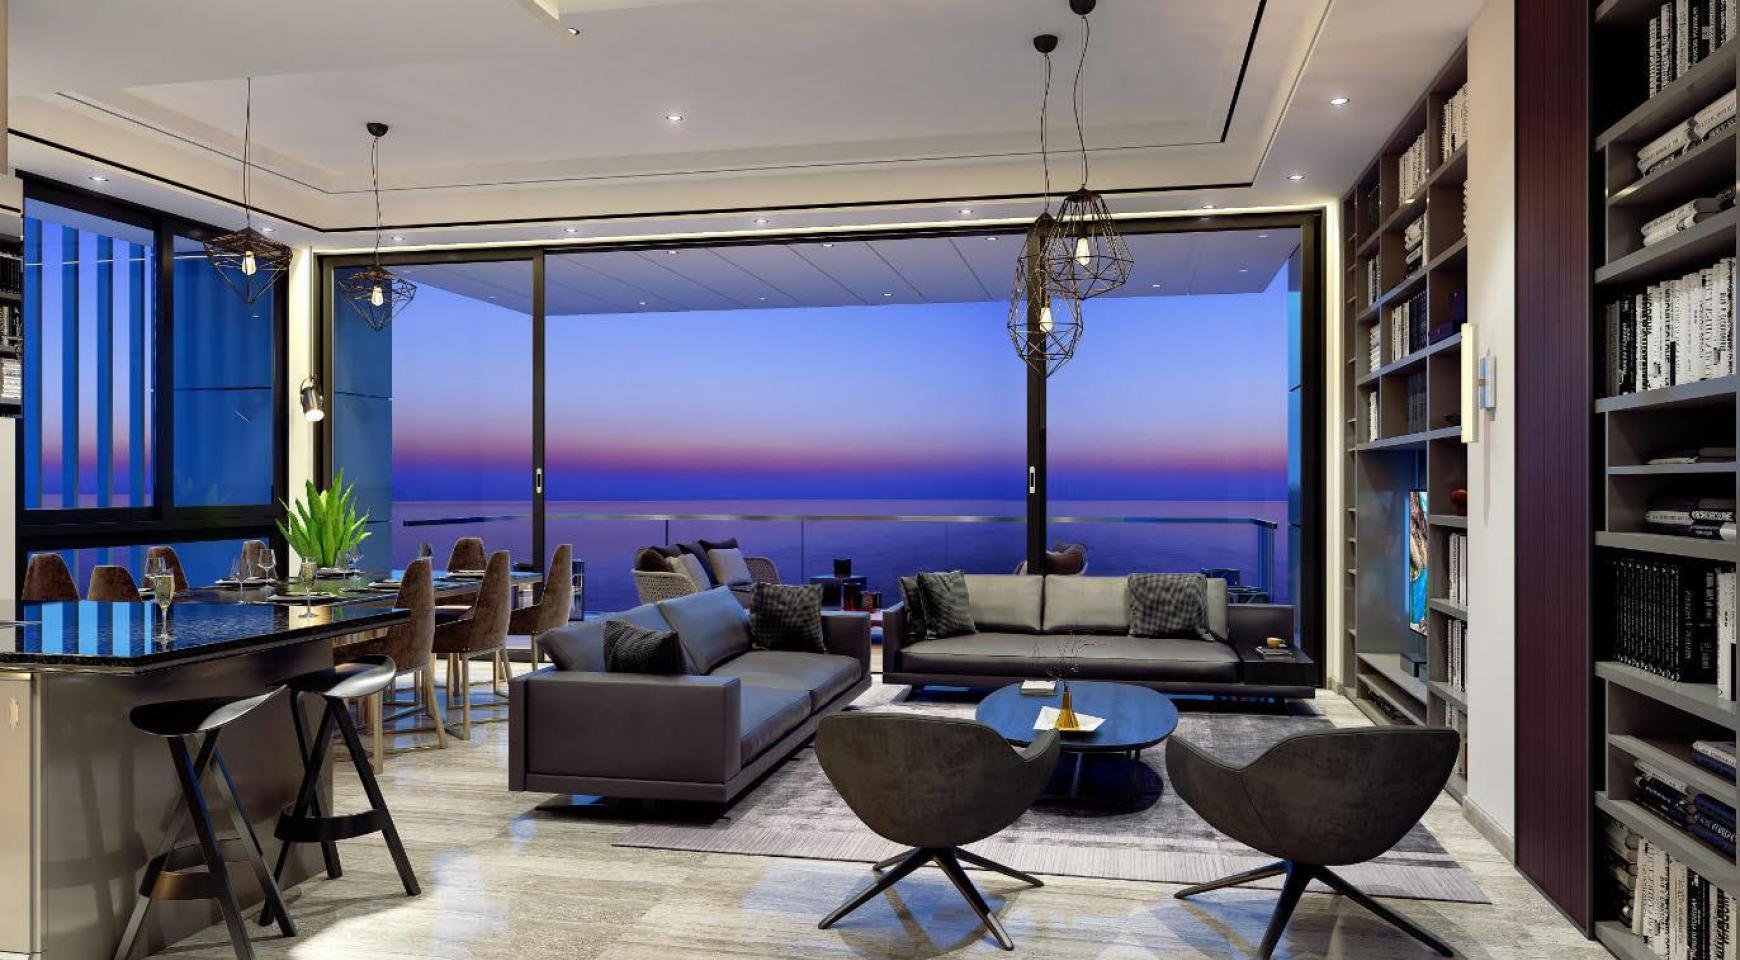 2 Bedroom Apartment with Sea Views in a Luxury Complex - 1